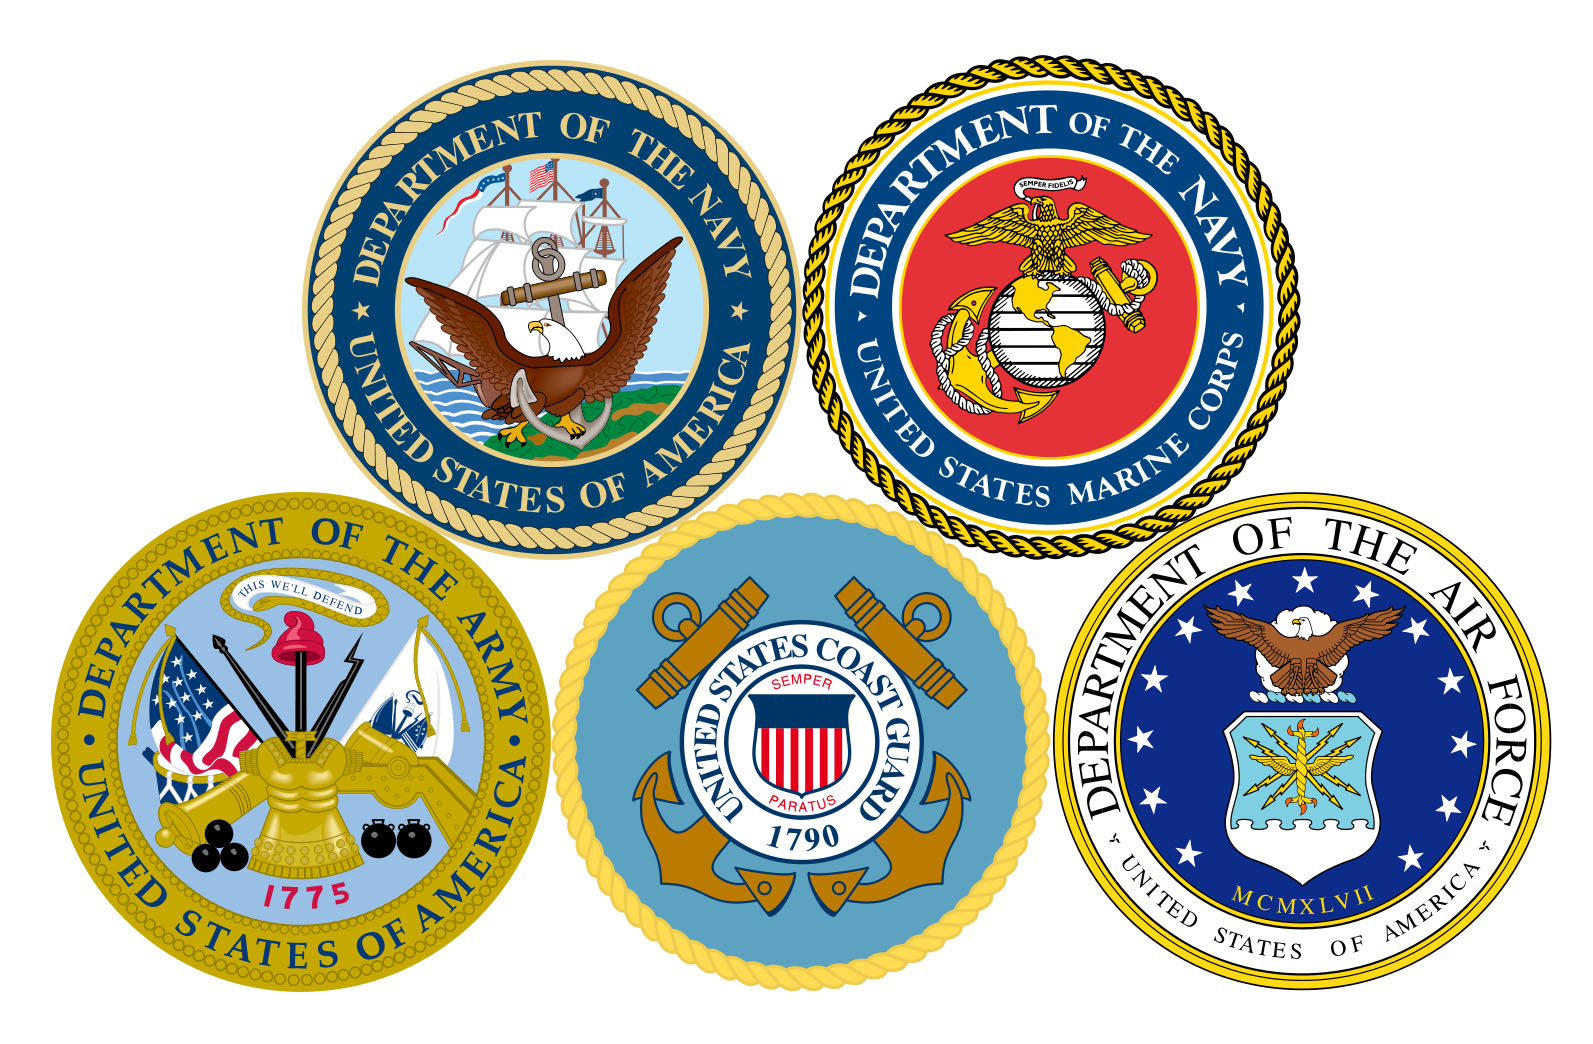 Veterans clipart military. Home studies and support